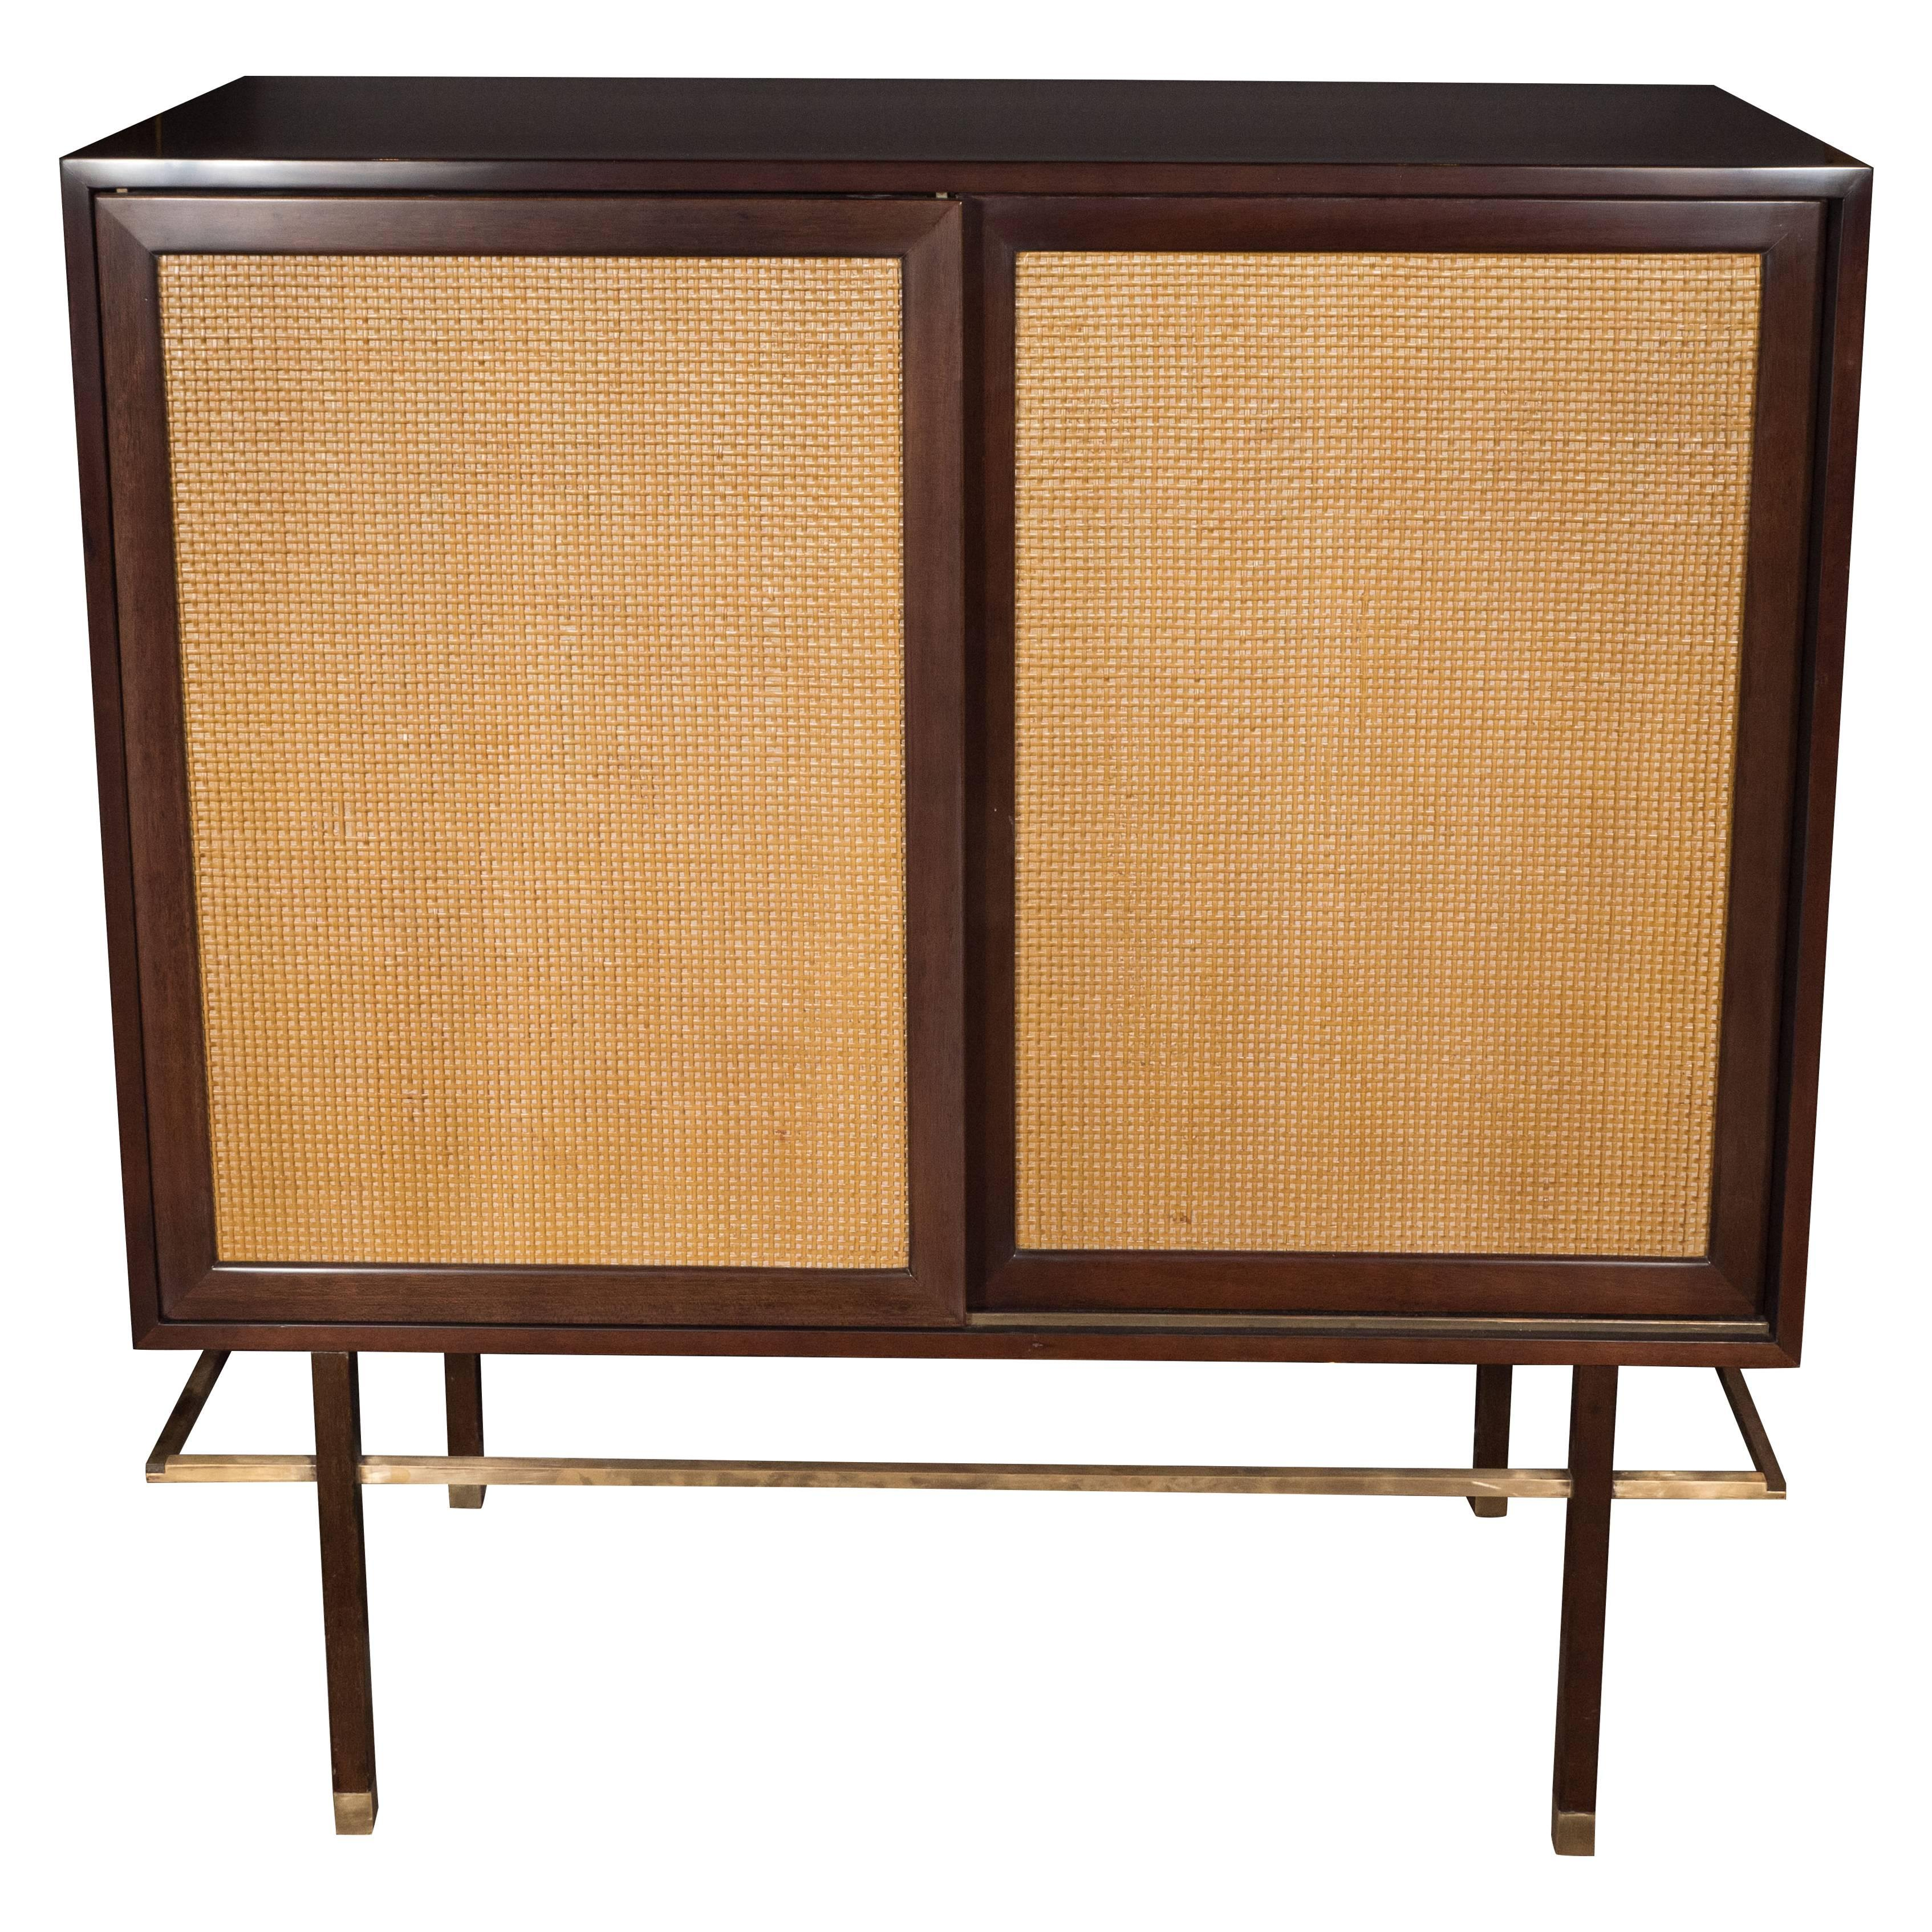 Mid century modern brass walnut and cane cabinet by harvey probber for sale at 1stdibs